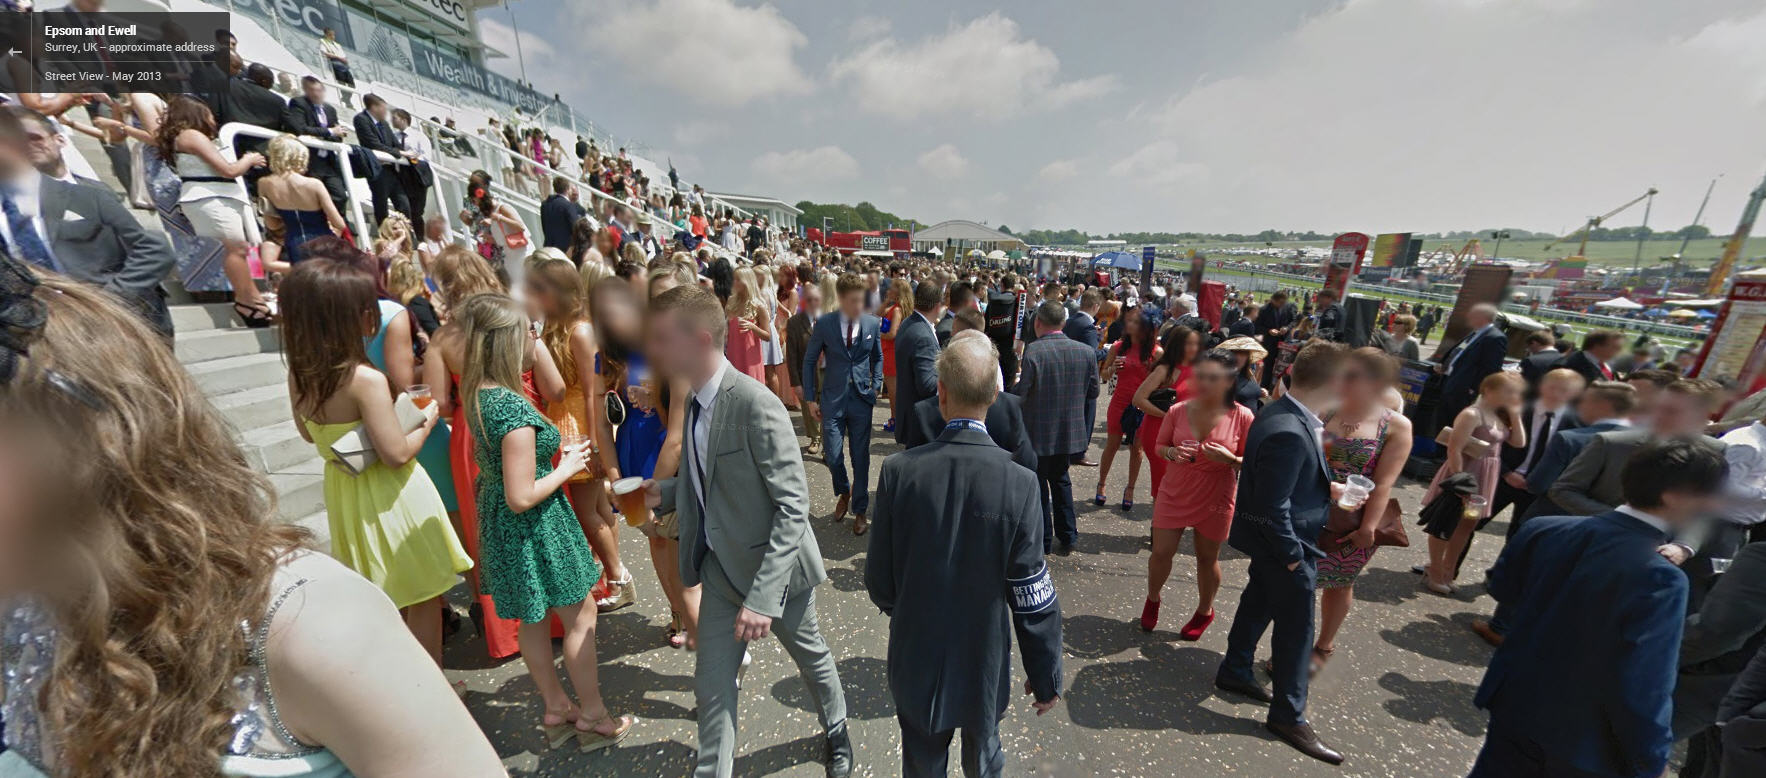 Wedding?  Nope, Just a day at the Epsom Downs Racecourse